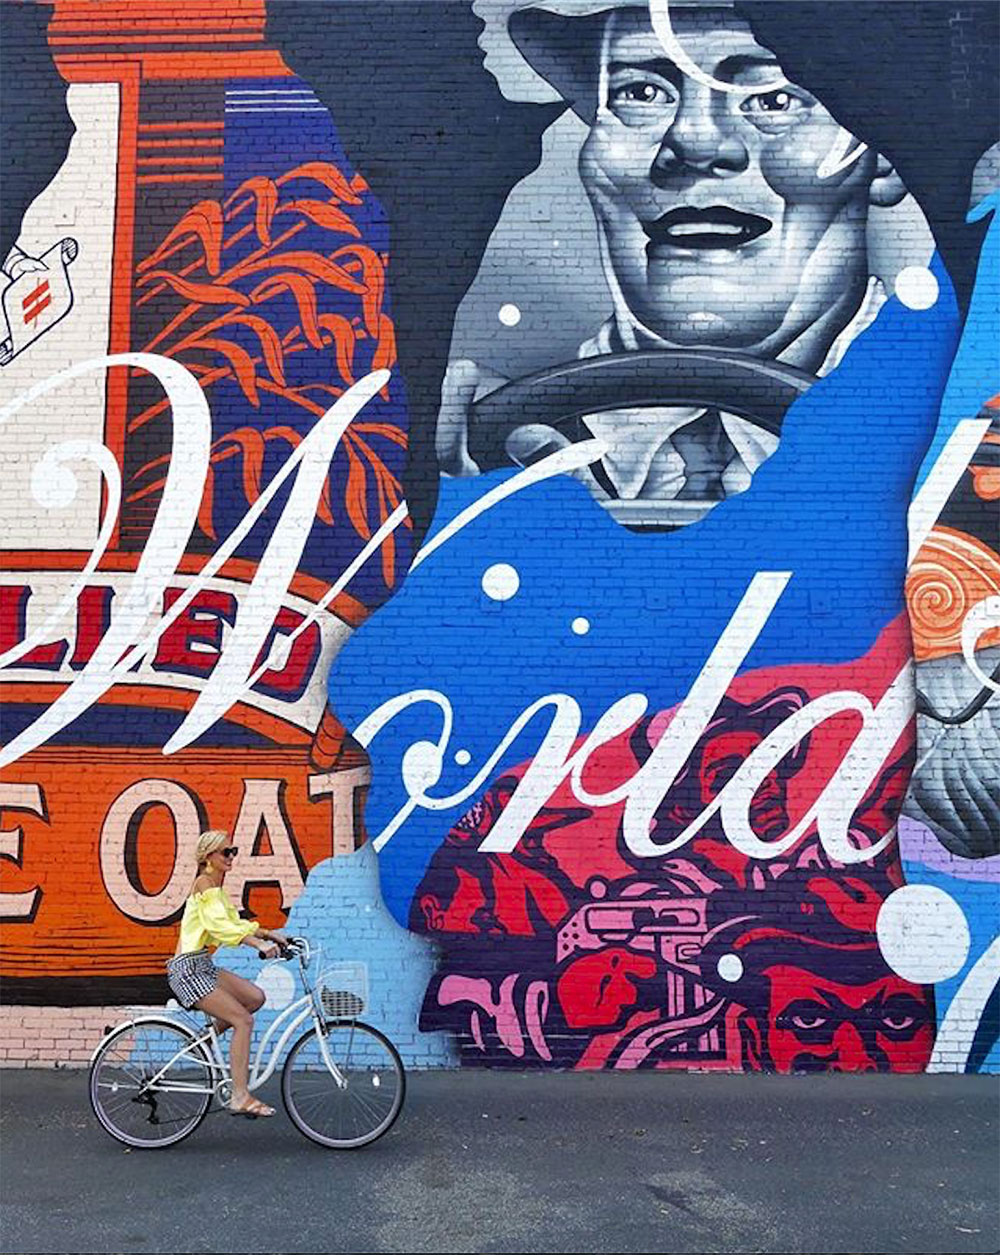 vandi-fair-dallas-fashion-blog-lauren-vandiver-southern-texas-travel-blogger-visit-long-beach-california-bike-ride-pow-wow-murals-photography-by-faith-mari